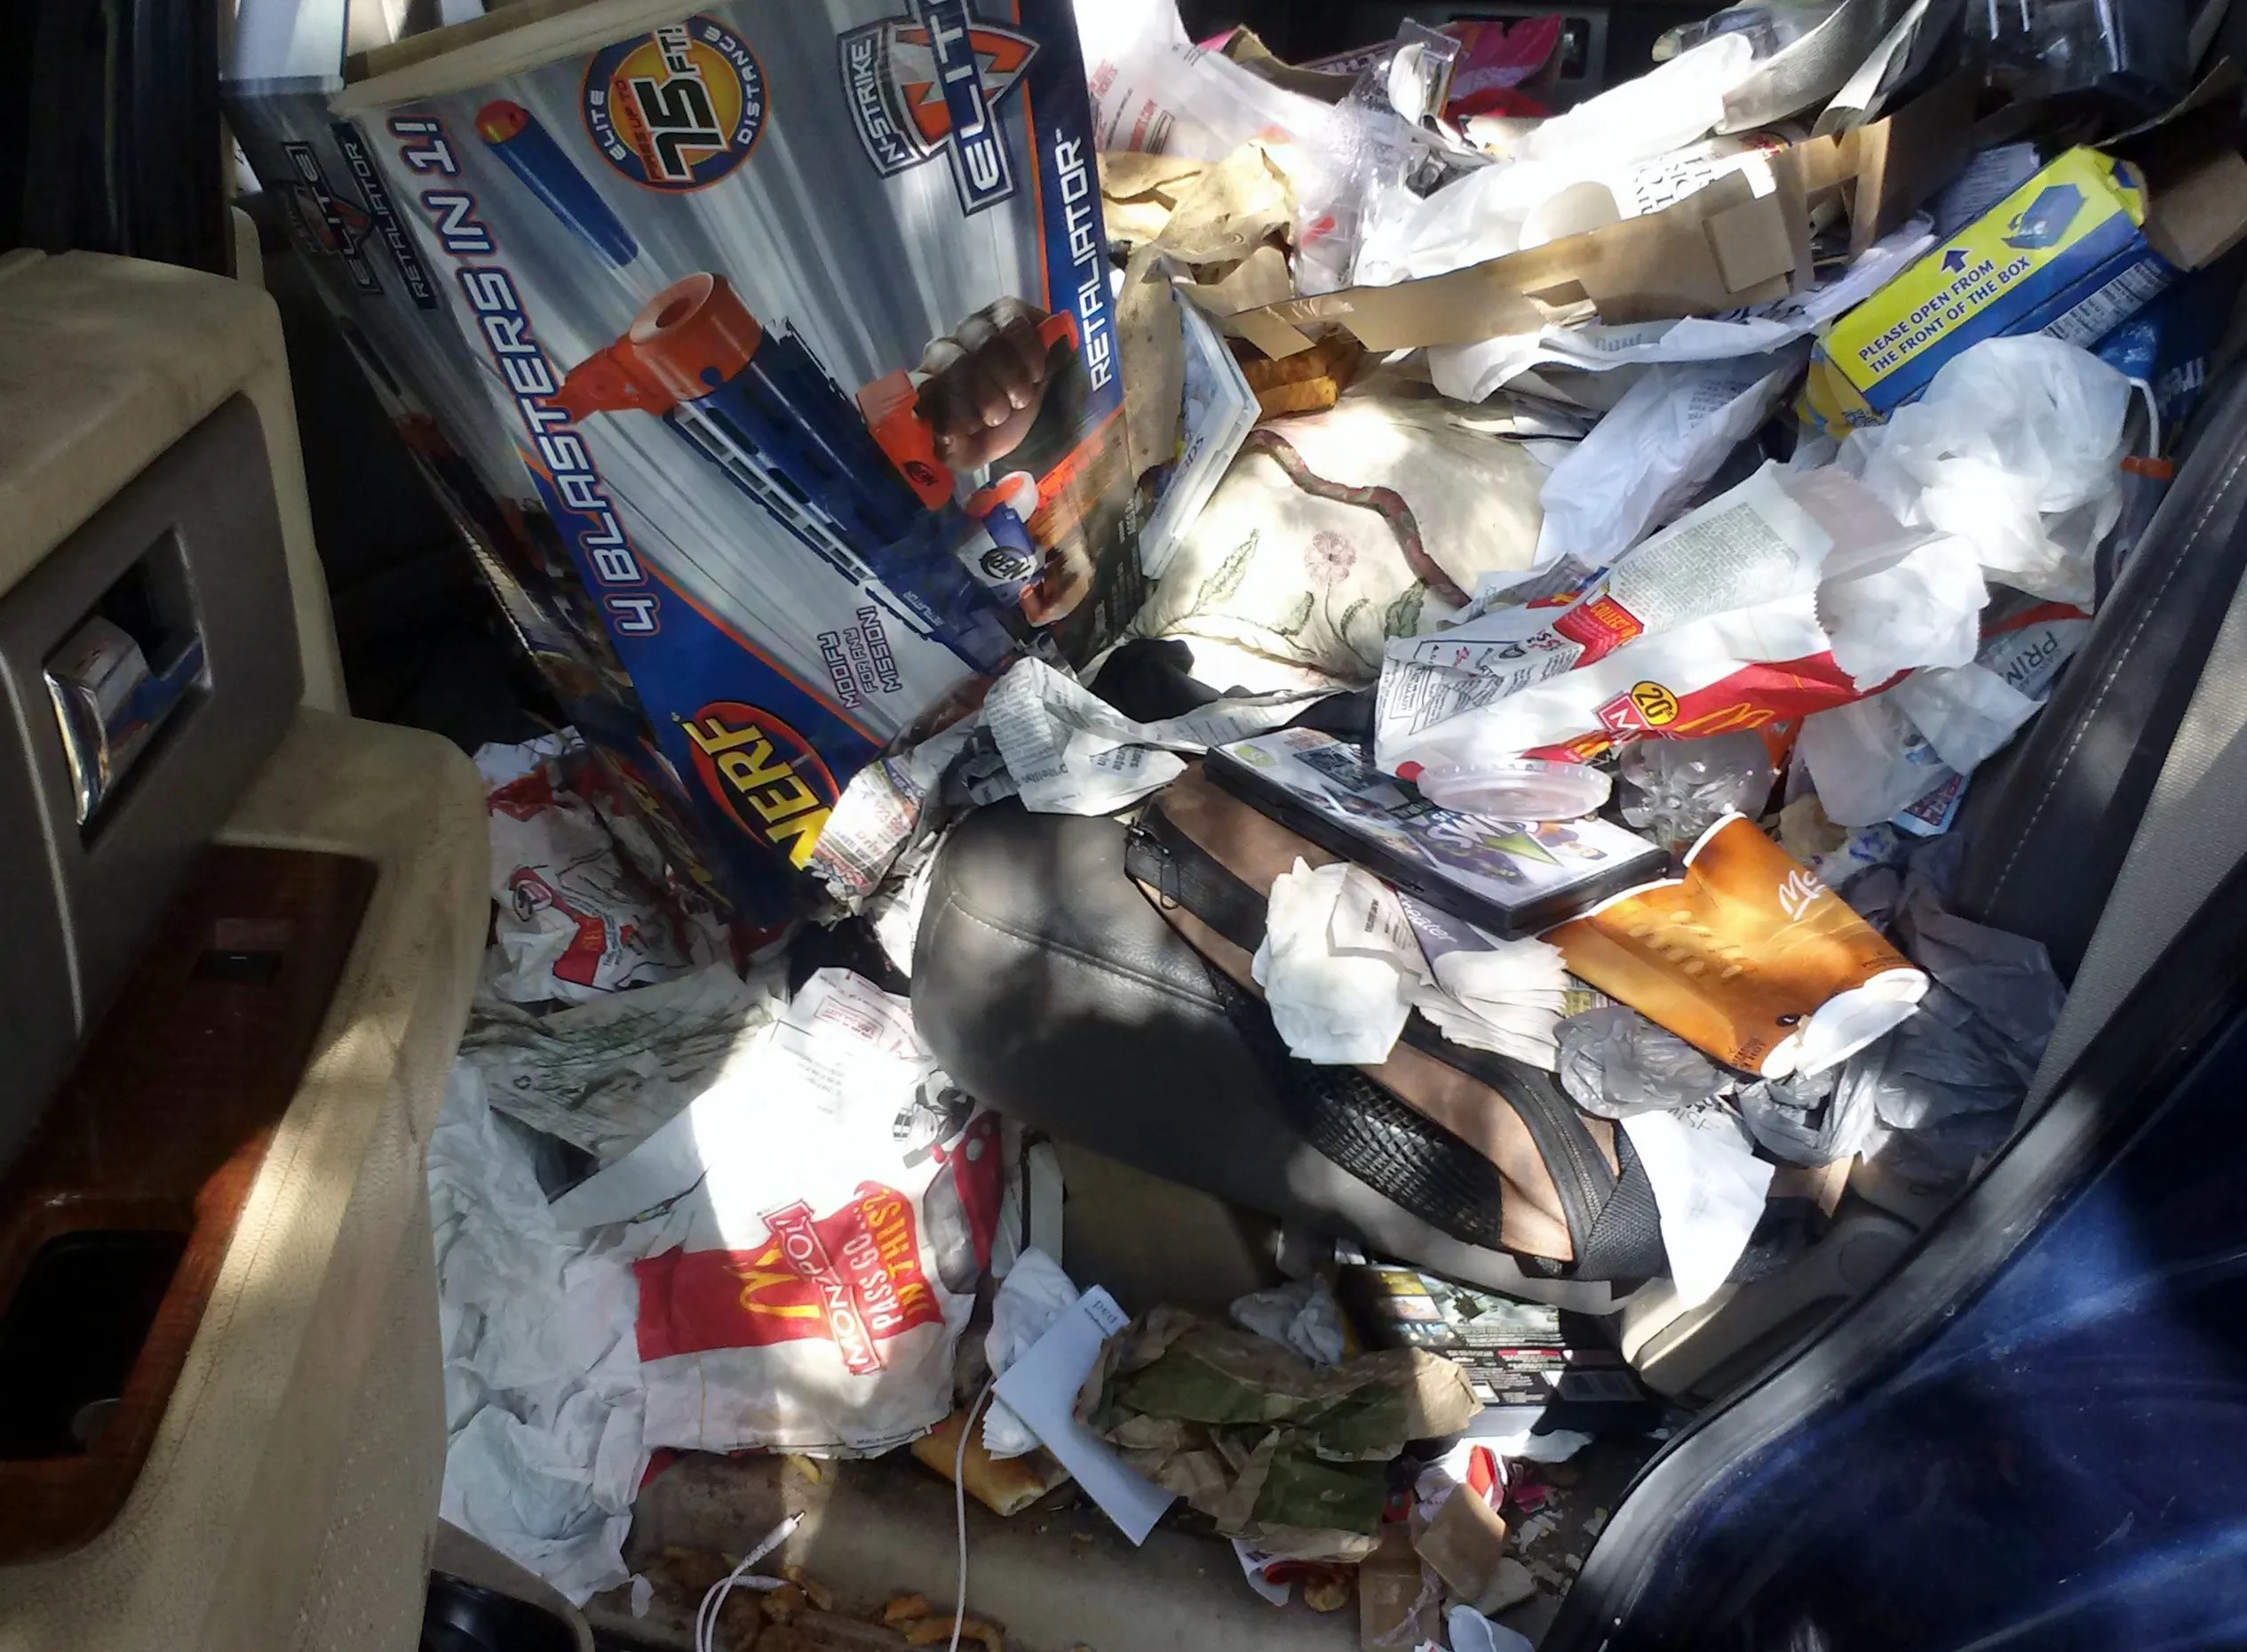 This Car Interior In Clearwater Needs Detailing And Serious Trash Removal